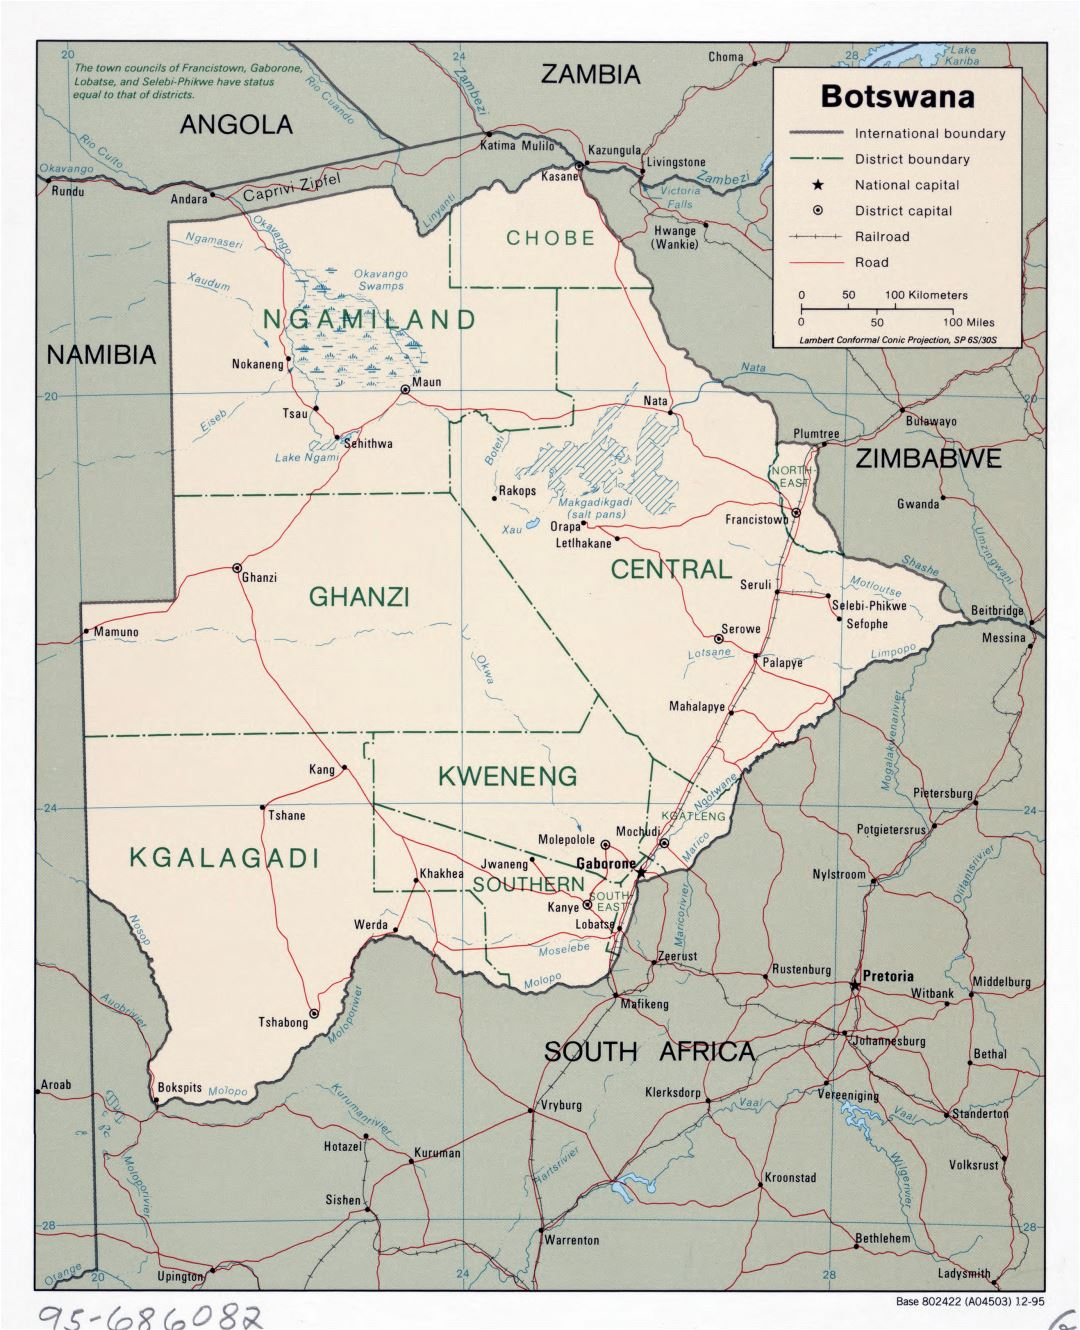 Large scale political and administrative map of Botswana with roads, railroads and major cities - 1995